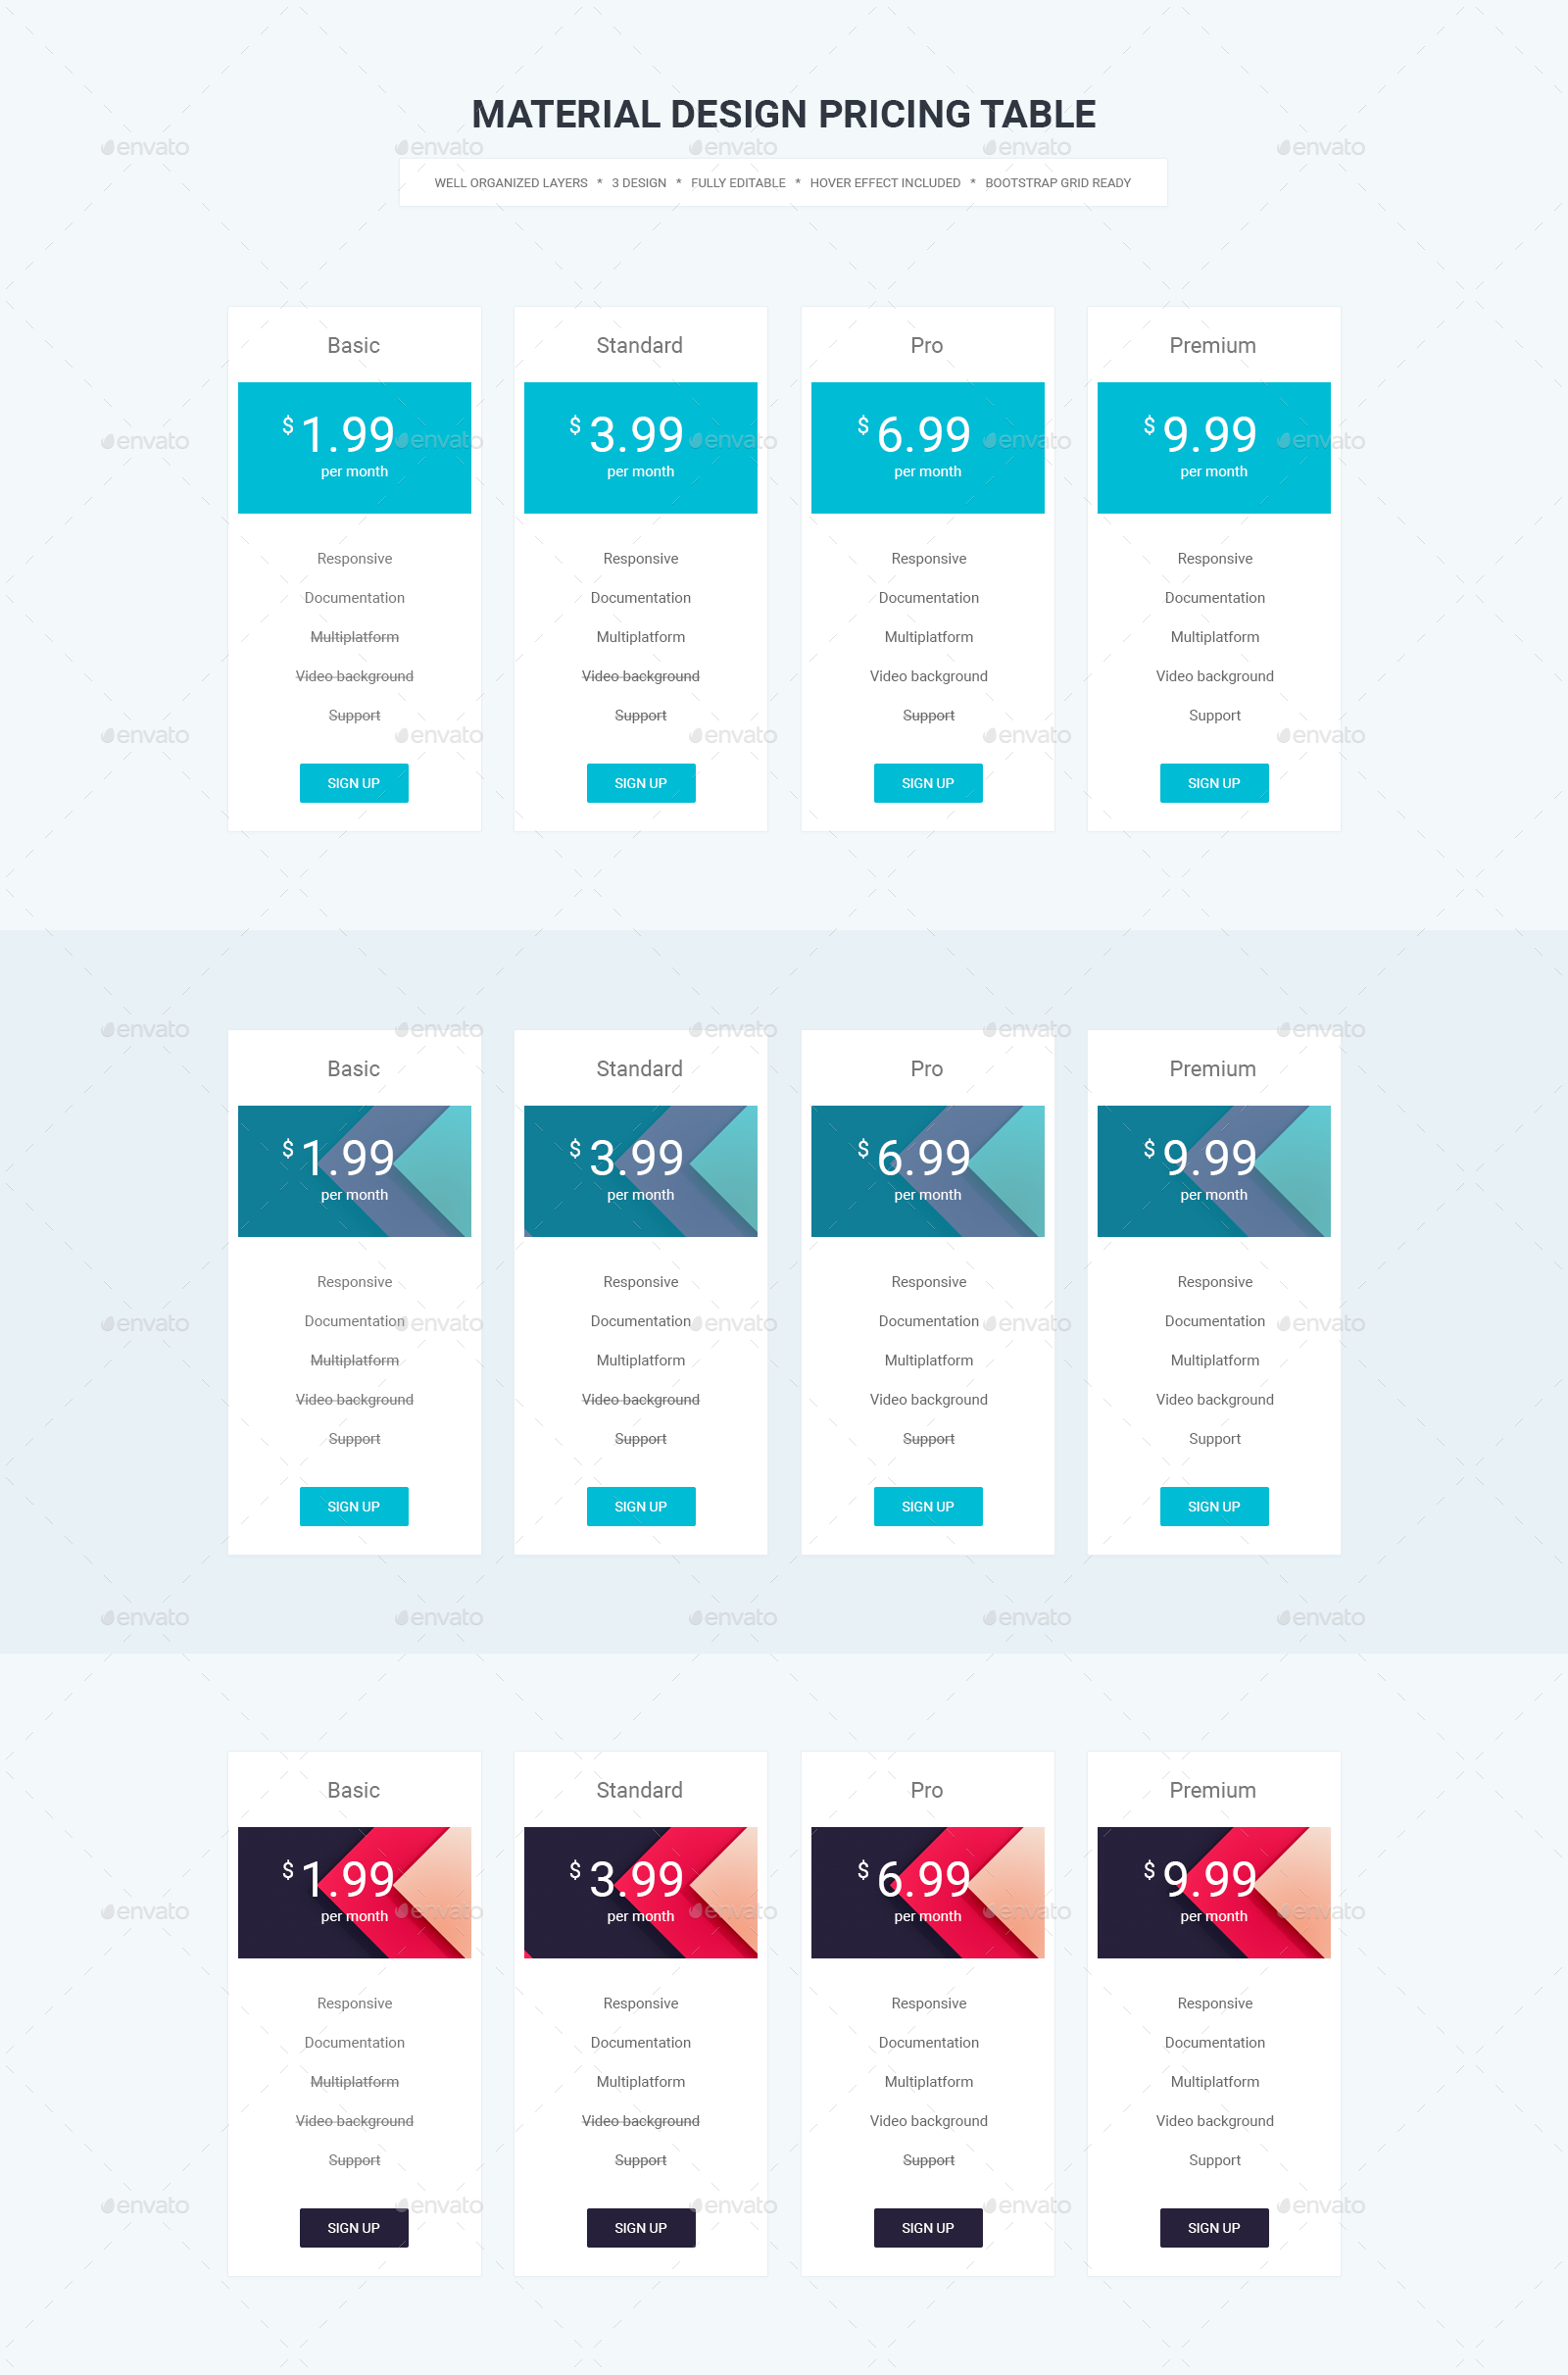 Material design pricing table materialup for Material design table